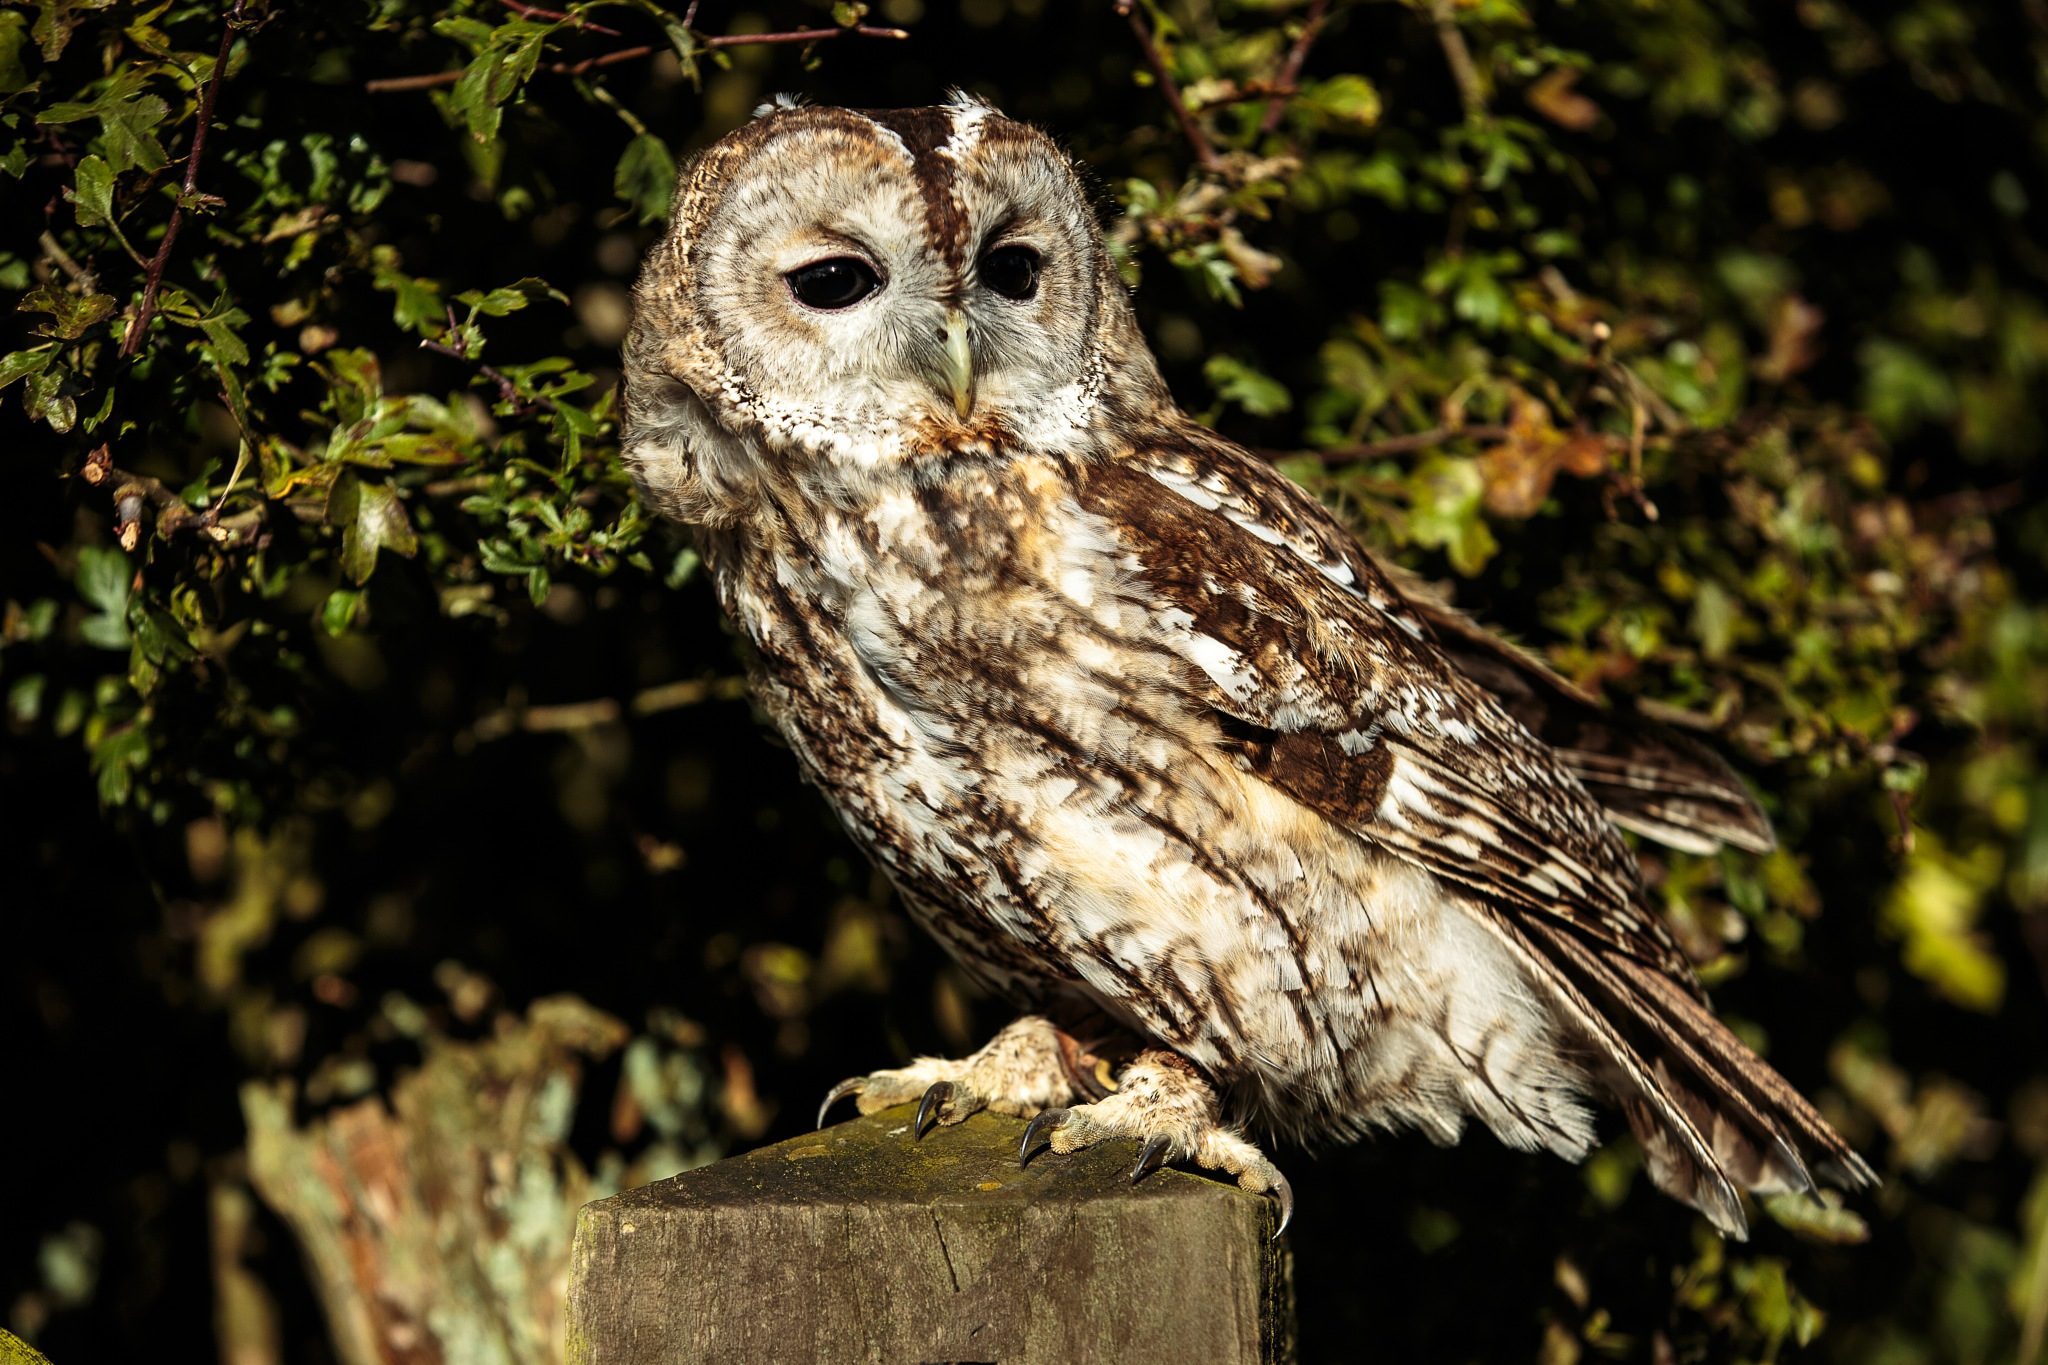 Young (6 months) Tawny Owl by dgwhit